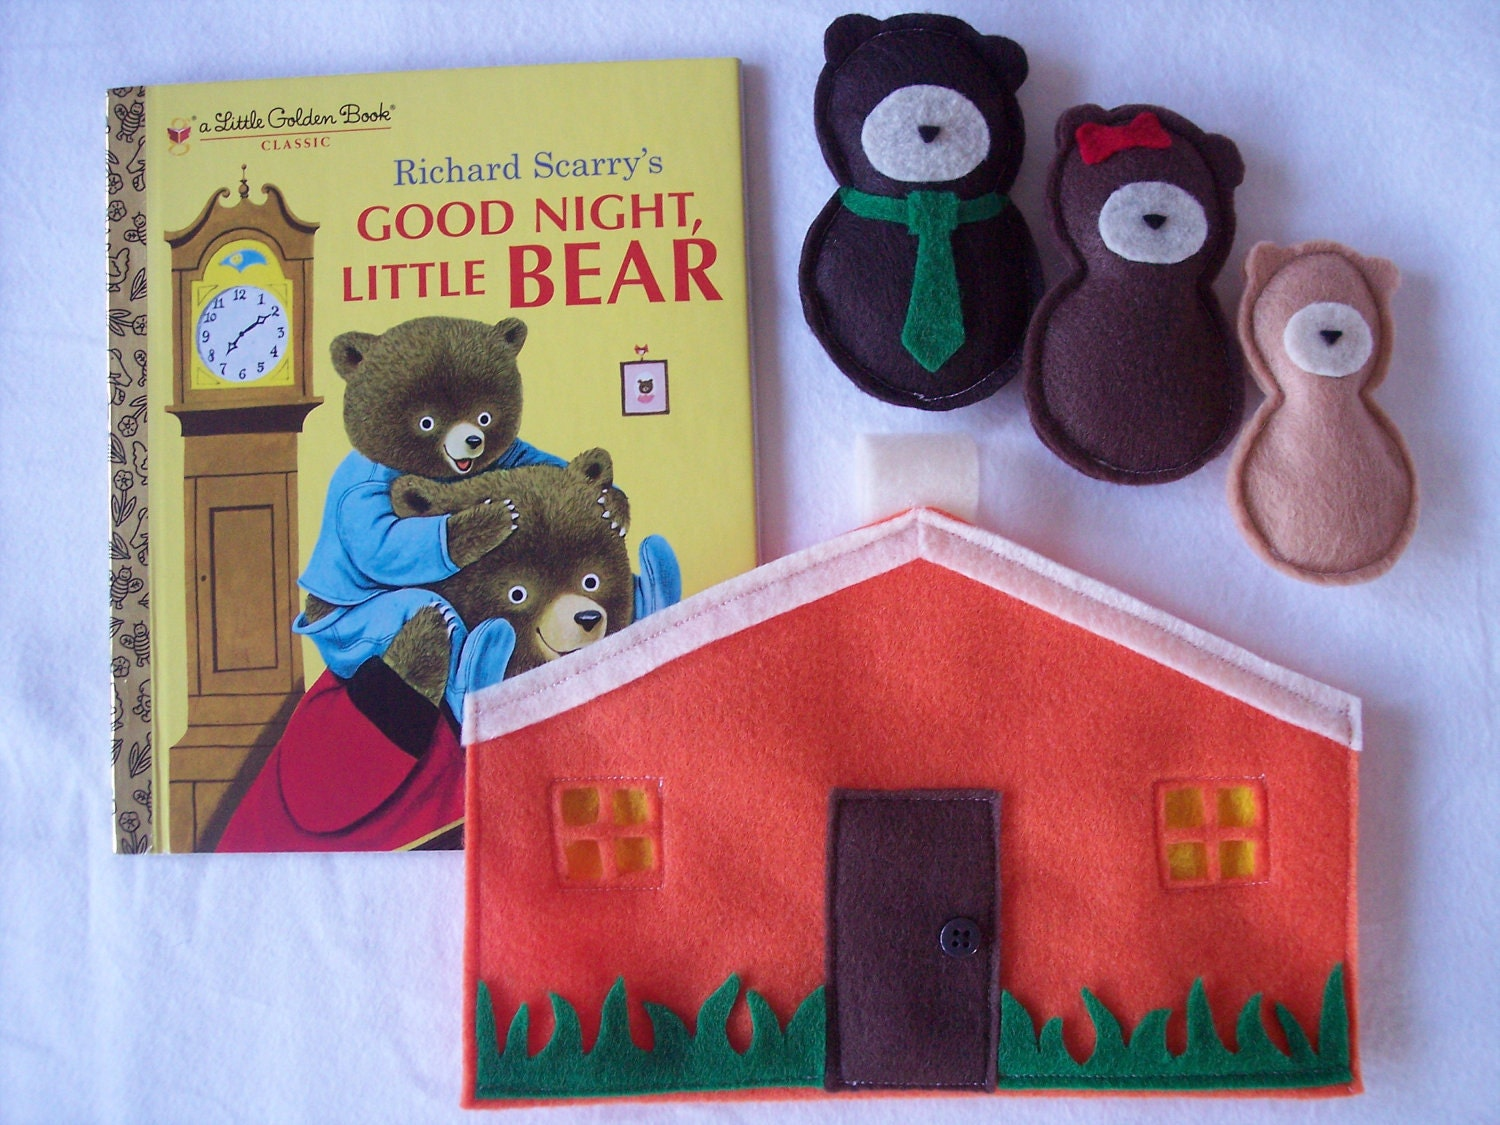 Quiet Activity Playhouse Sets with Plush Characters and Book (YOU PICK ONE) - lizzieboutique